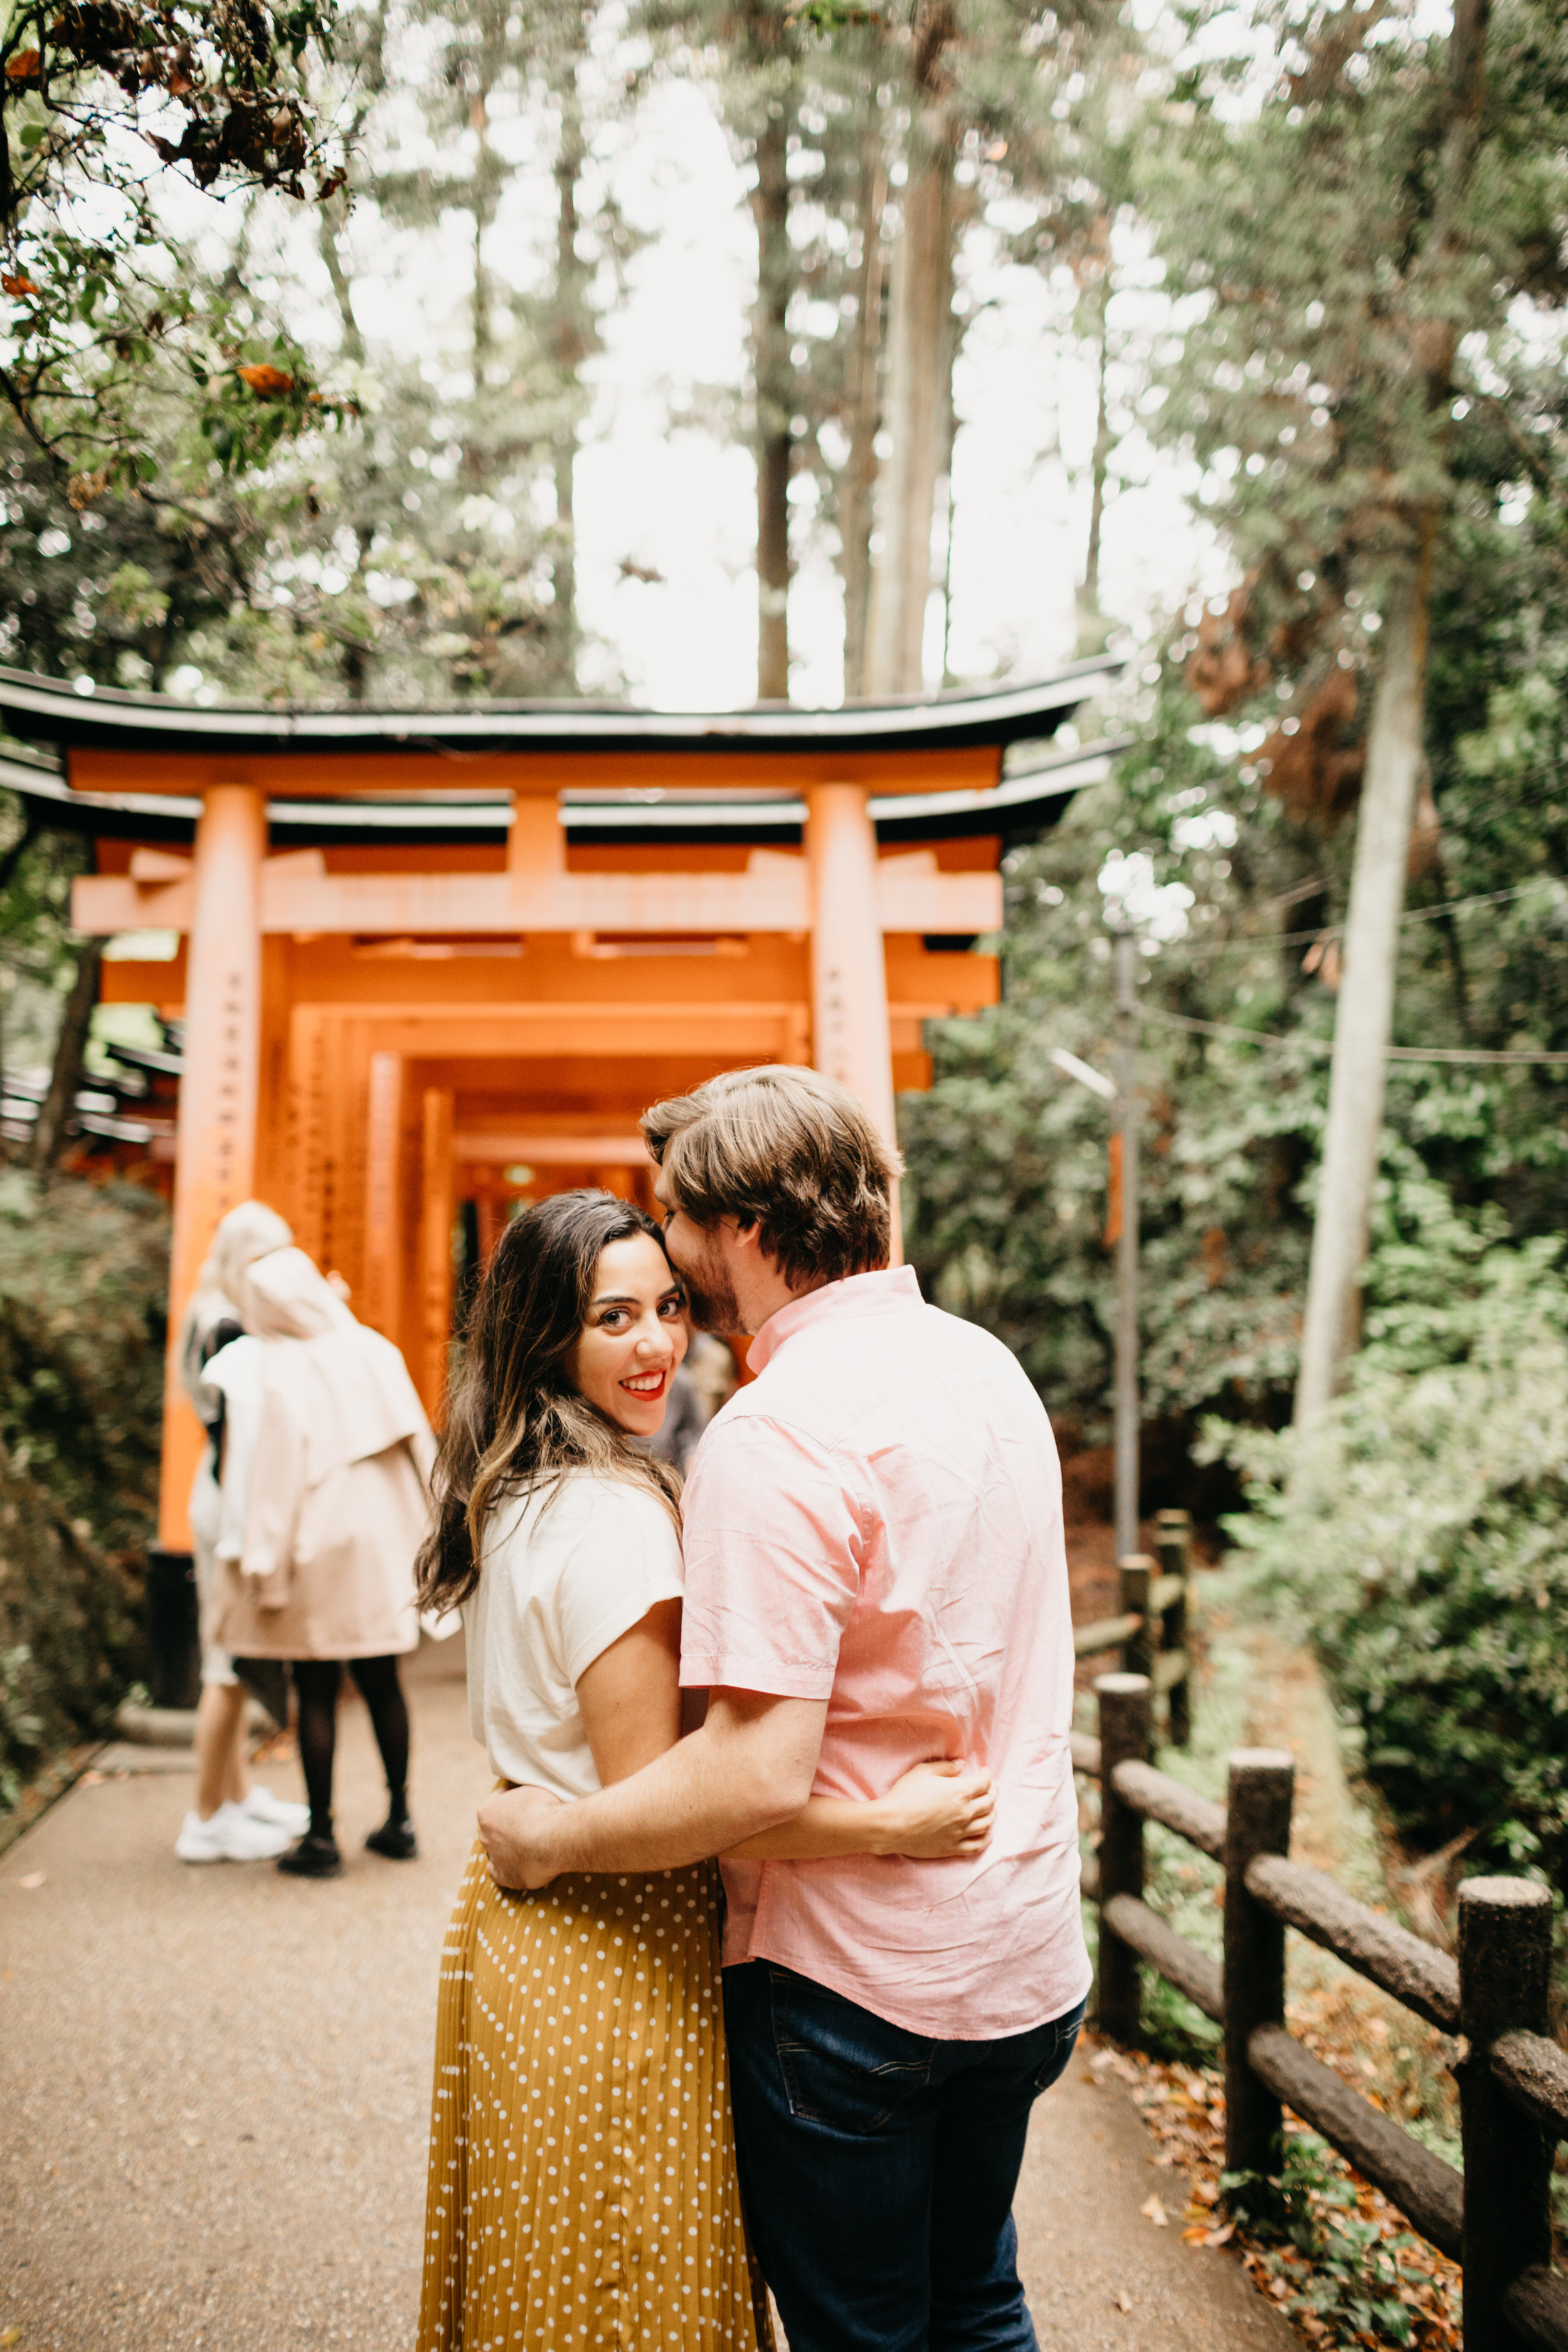 fushimi_inari_shrine_kyoto_couples_session_pictures_by_samantha_look-8.jpg